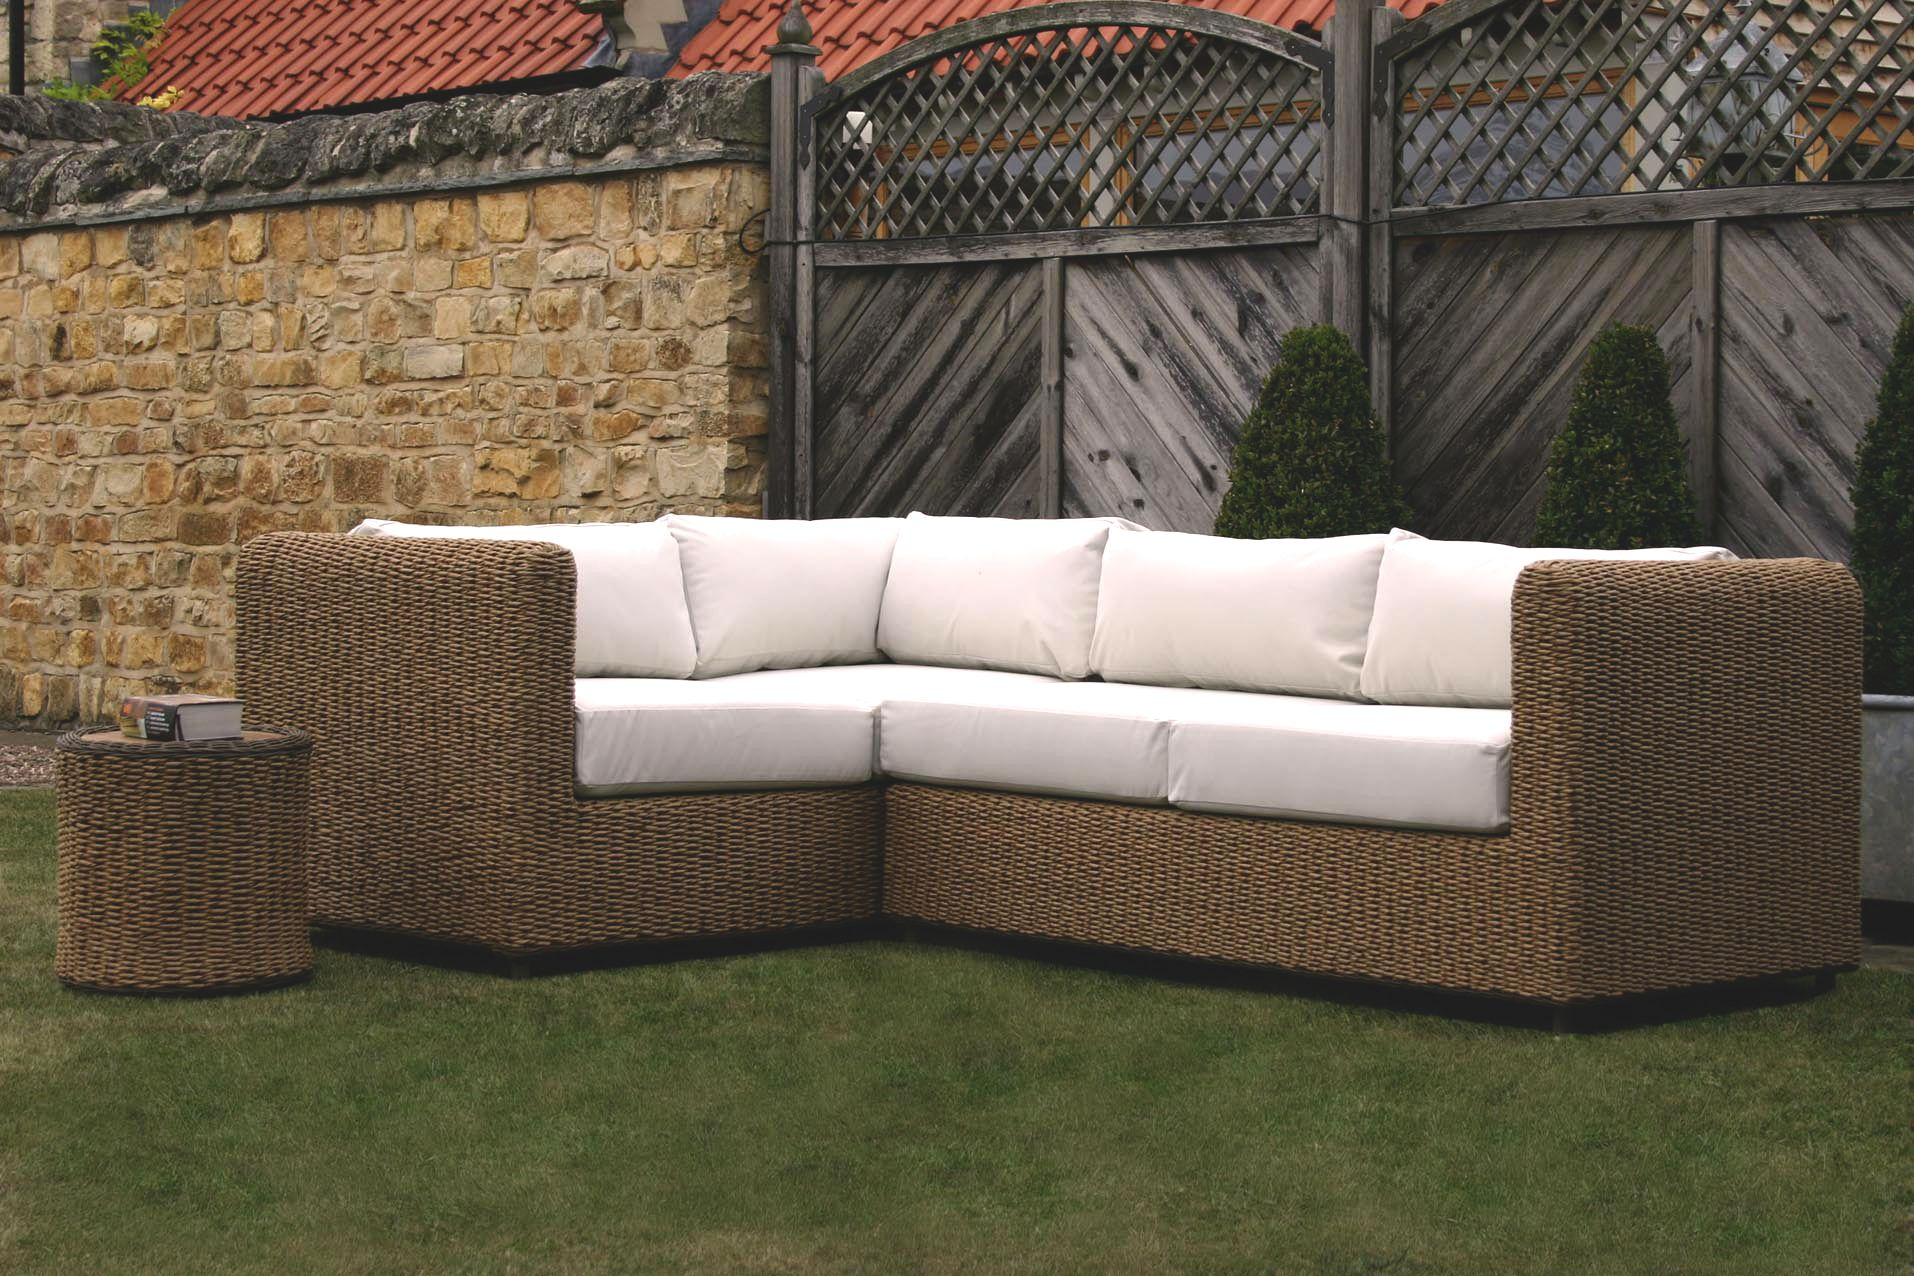 Our New Malibu Garden Corner Sofas Woven With Bespoke Outdoor Cushions In A Range Of Fabric Colours With Images Outdoor Sofa Outdoor Cushions Relaxing Outdoors